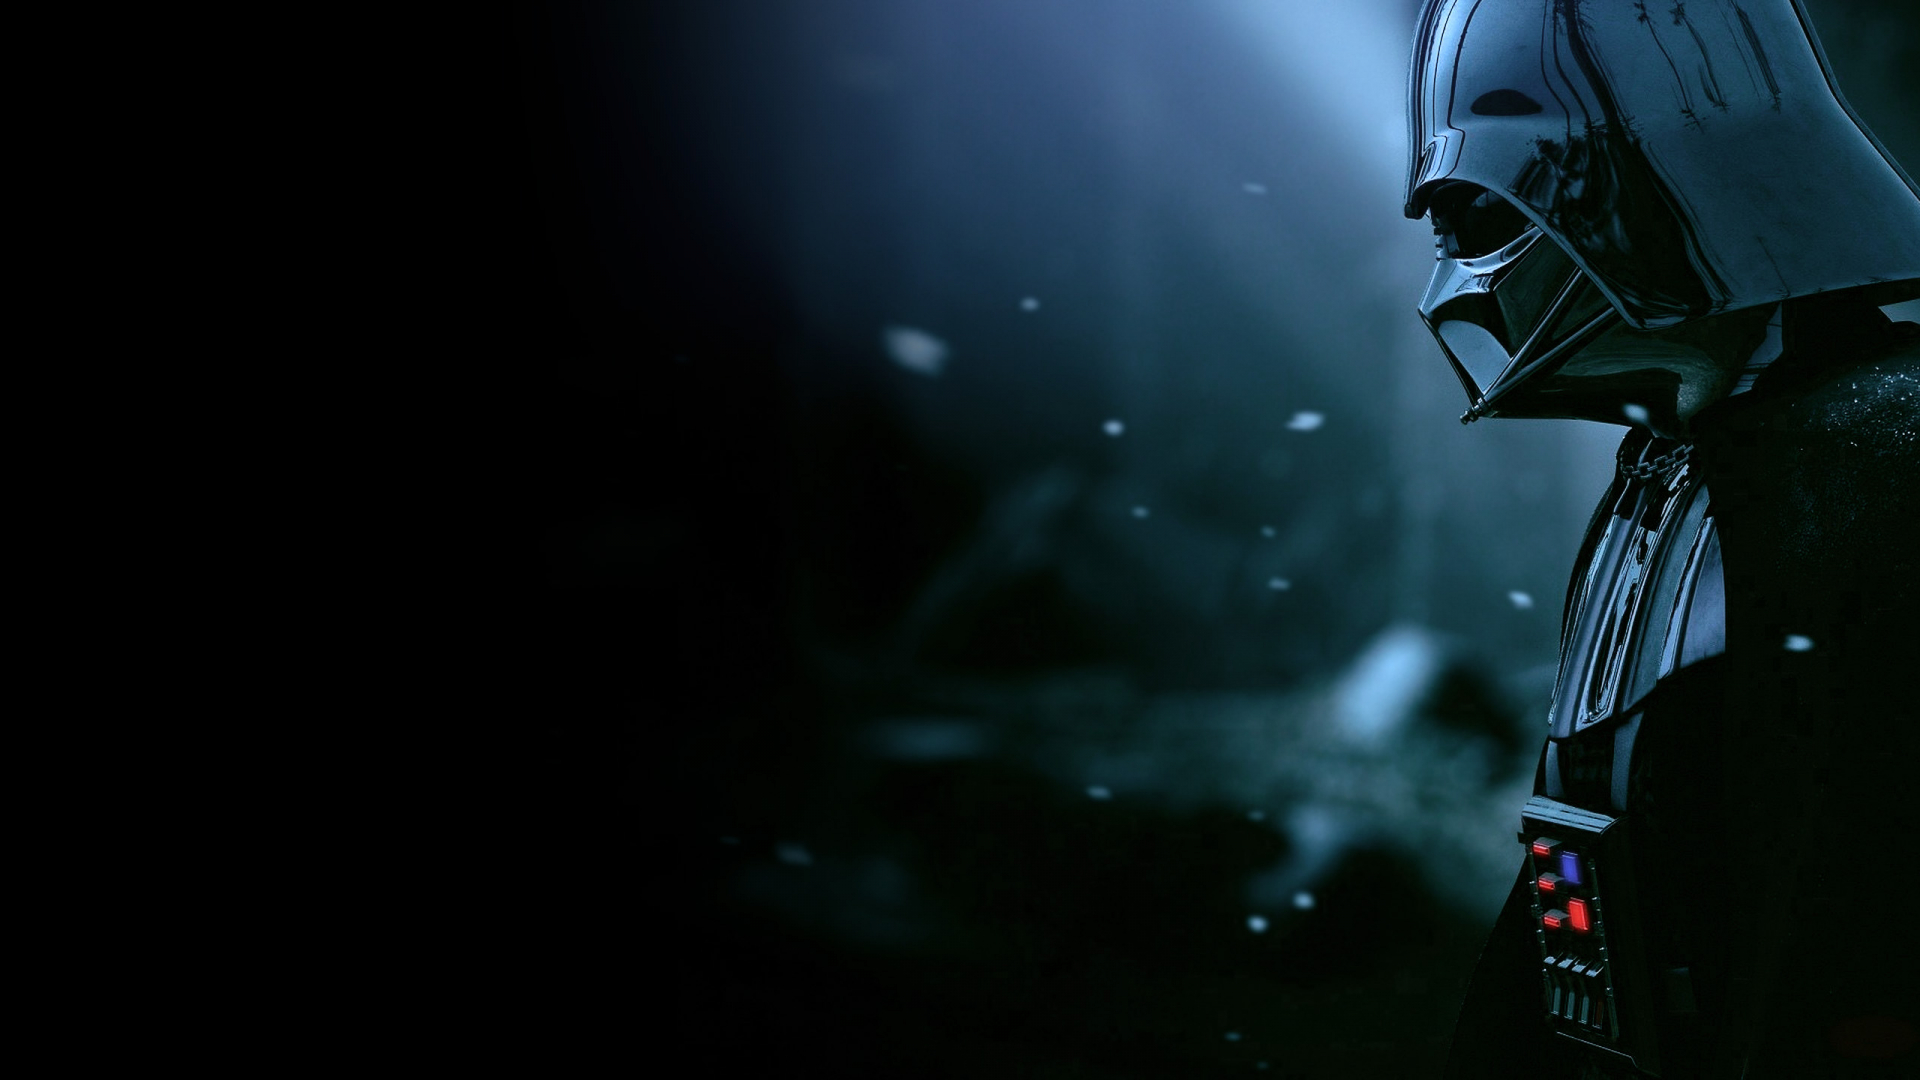 Free Download Star Wars Ultra Widescreen Backgrounds Album On Imgur 3440x1440 For Your Desktop Mobile Tablet Explore 69 Widescreen Backgrounds Free Background Wallpapers For Desktop Widescreen Wallpapers High Resolution